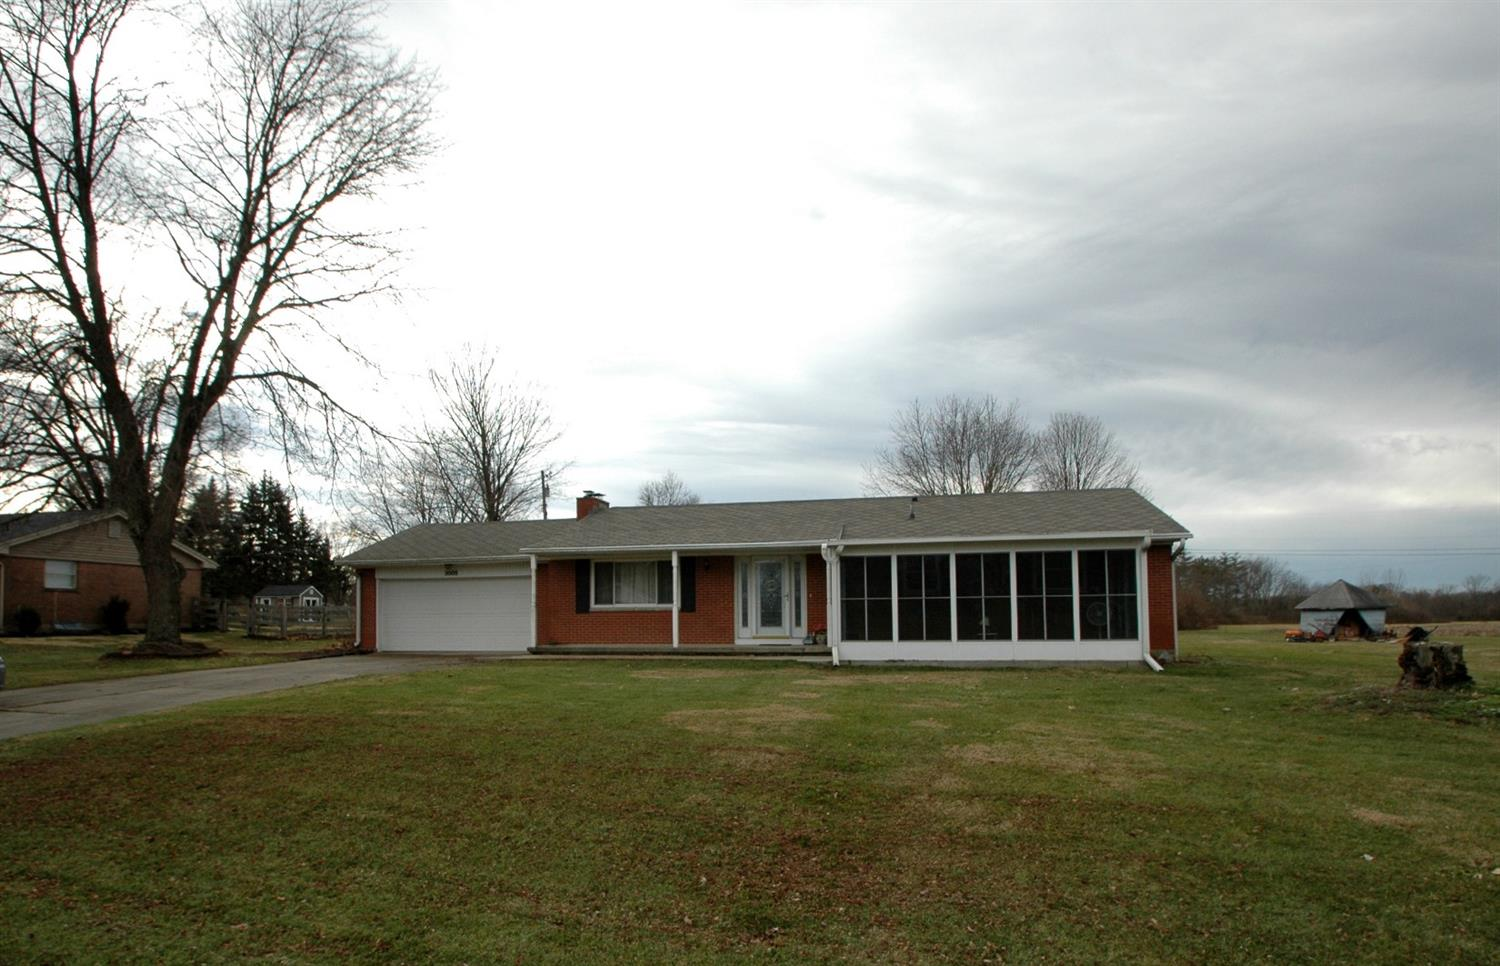 3505 Crestview Ave Clear Creek Twp., OH